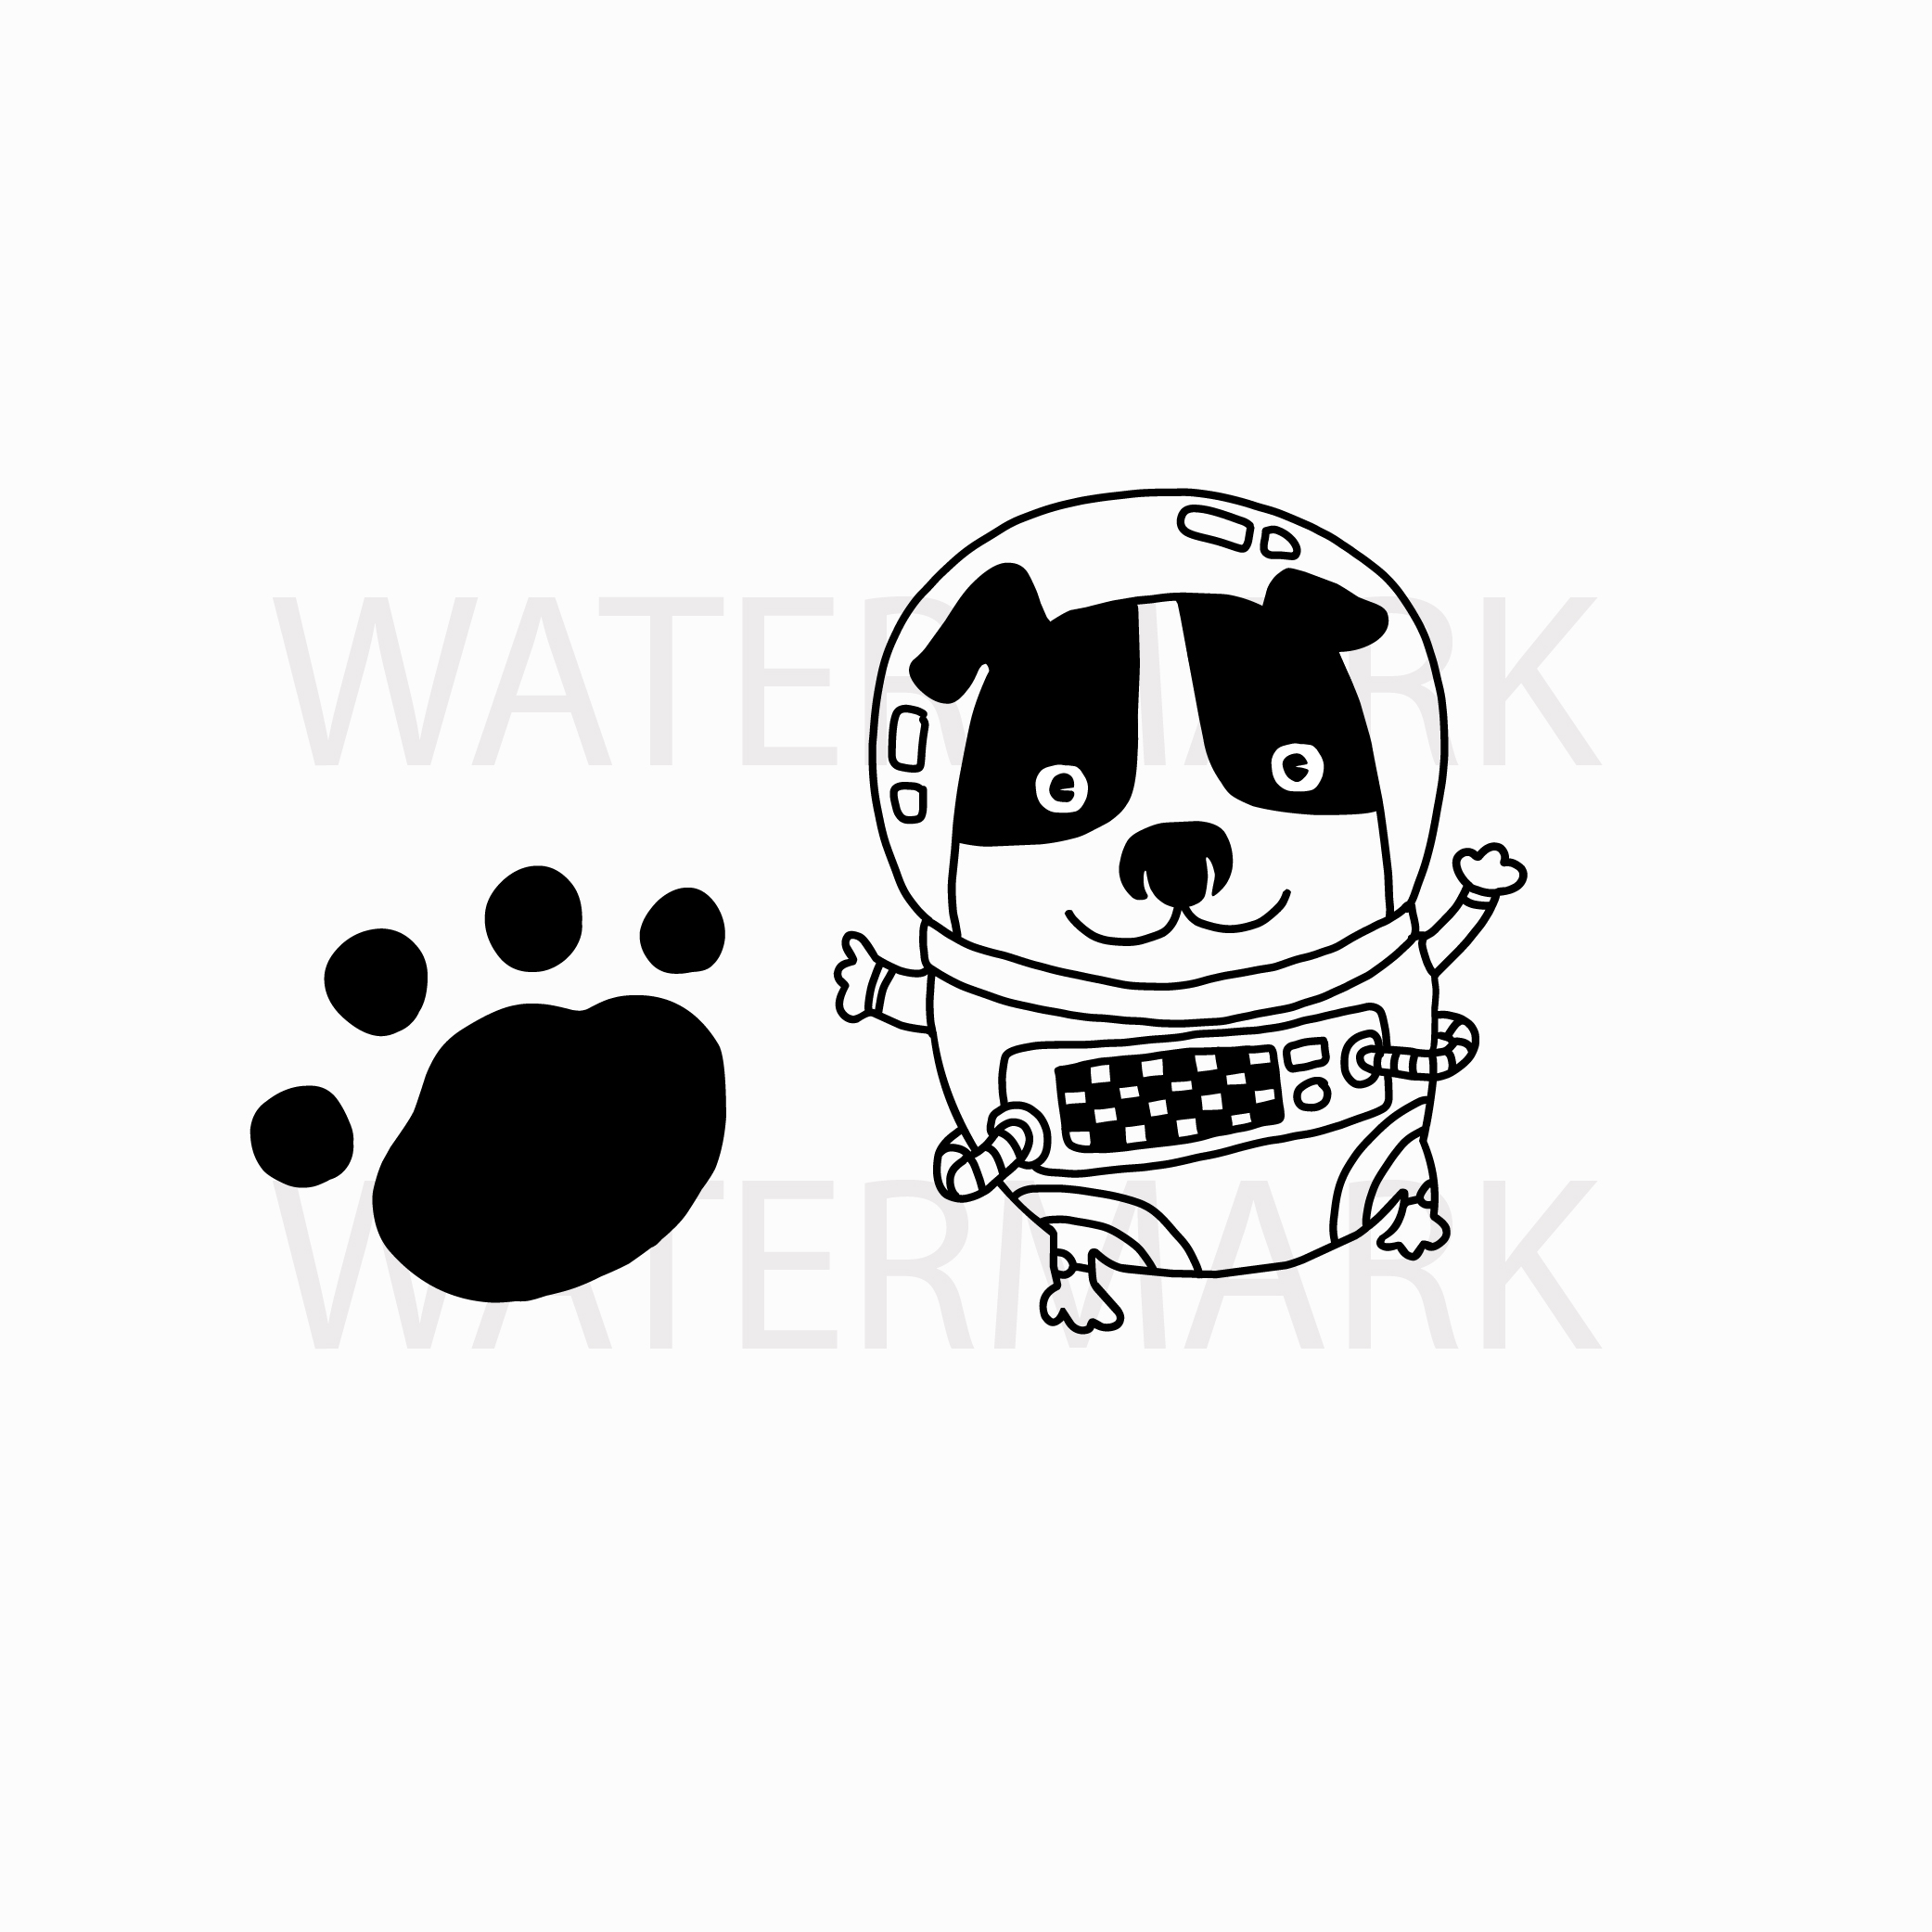 Astronaut Dog and footprint - One Small Step of dog for all dogkind - SVG/JPG/PNG Hand Drawing example image 1